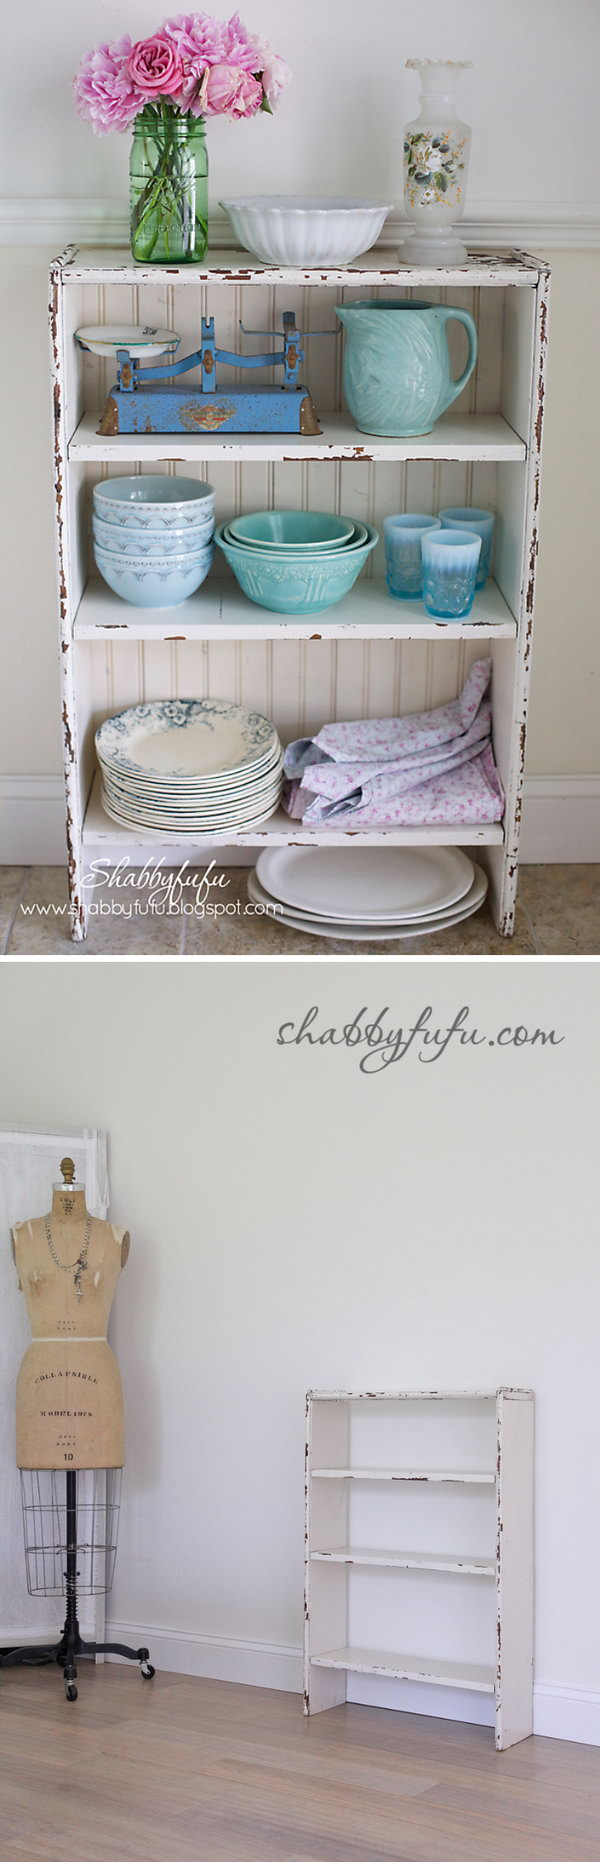 Diy shabby chic furniture - Diy Beadboard Cabinet From A Bookcase